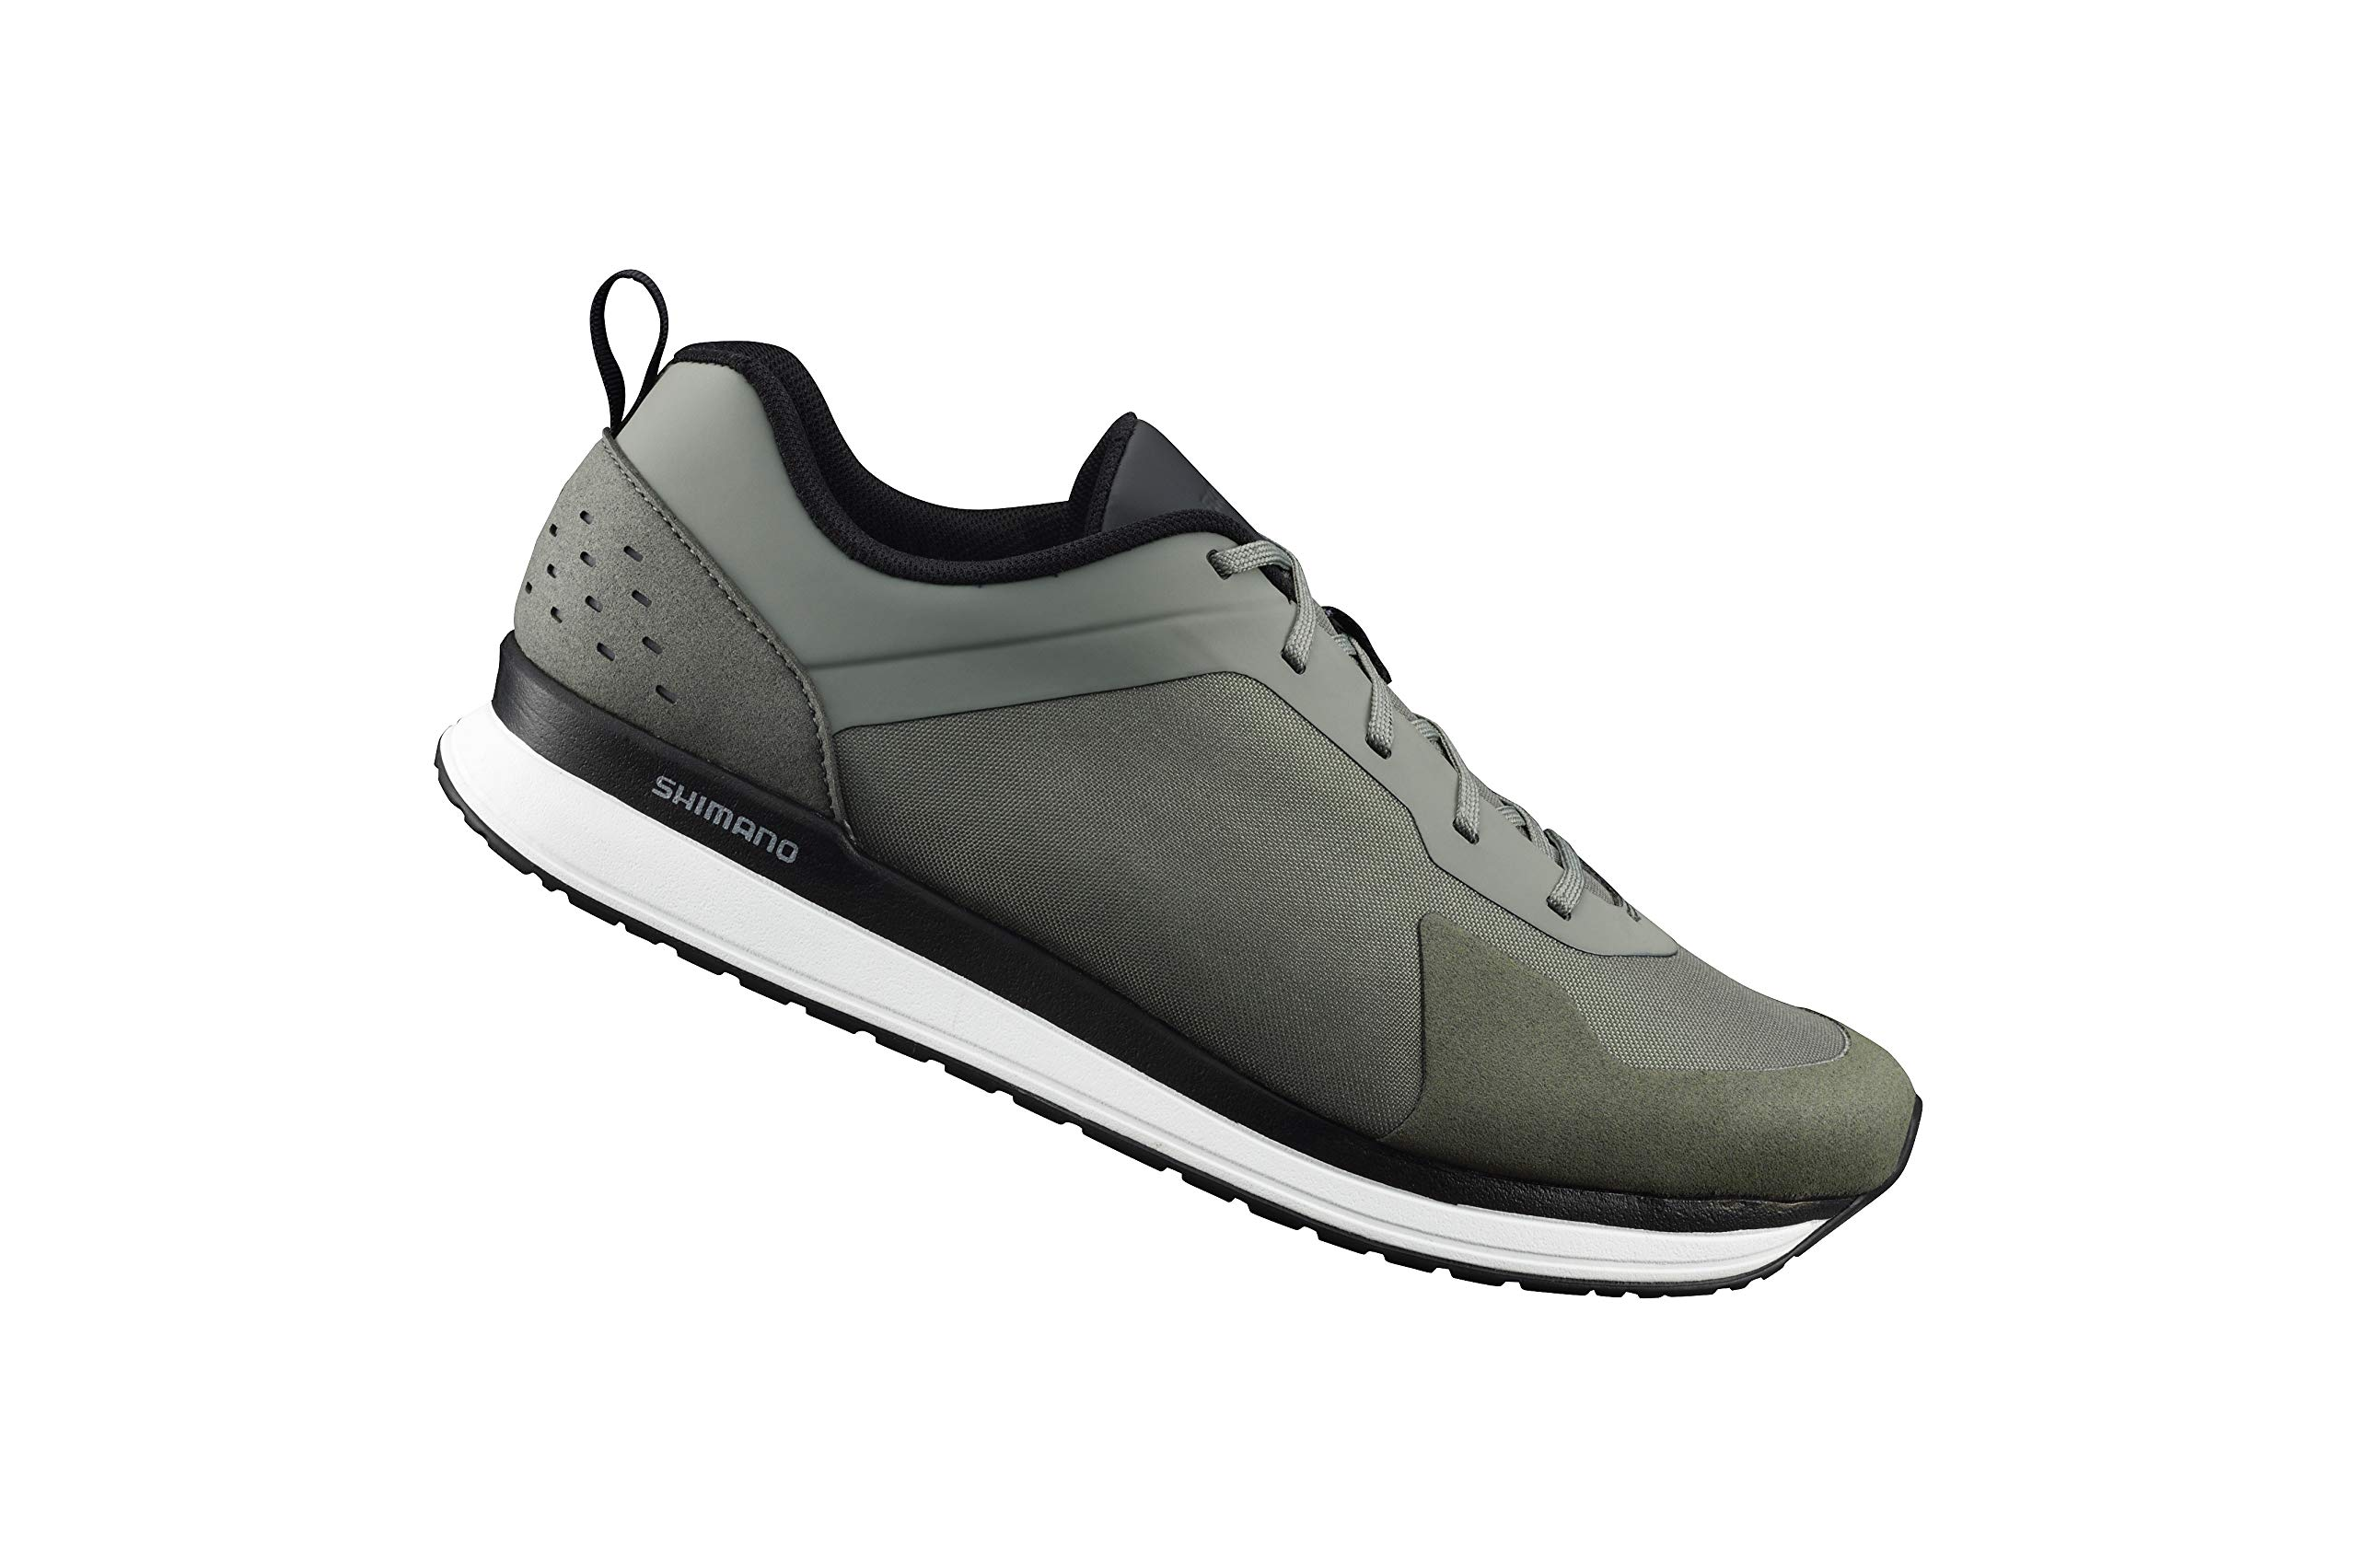 SHIMANO SH-CT5 Bicycle Shoes, Olive, Size 38